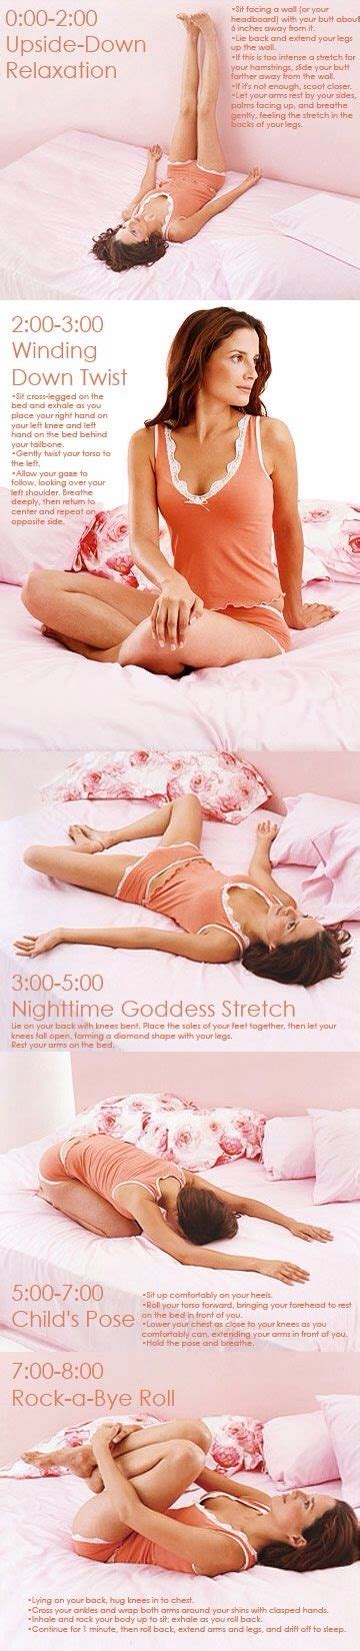 yoga before bed yoga moves to relax your body mind for better sleep the